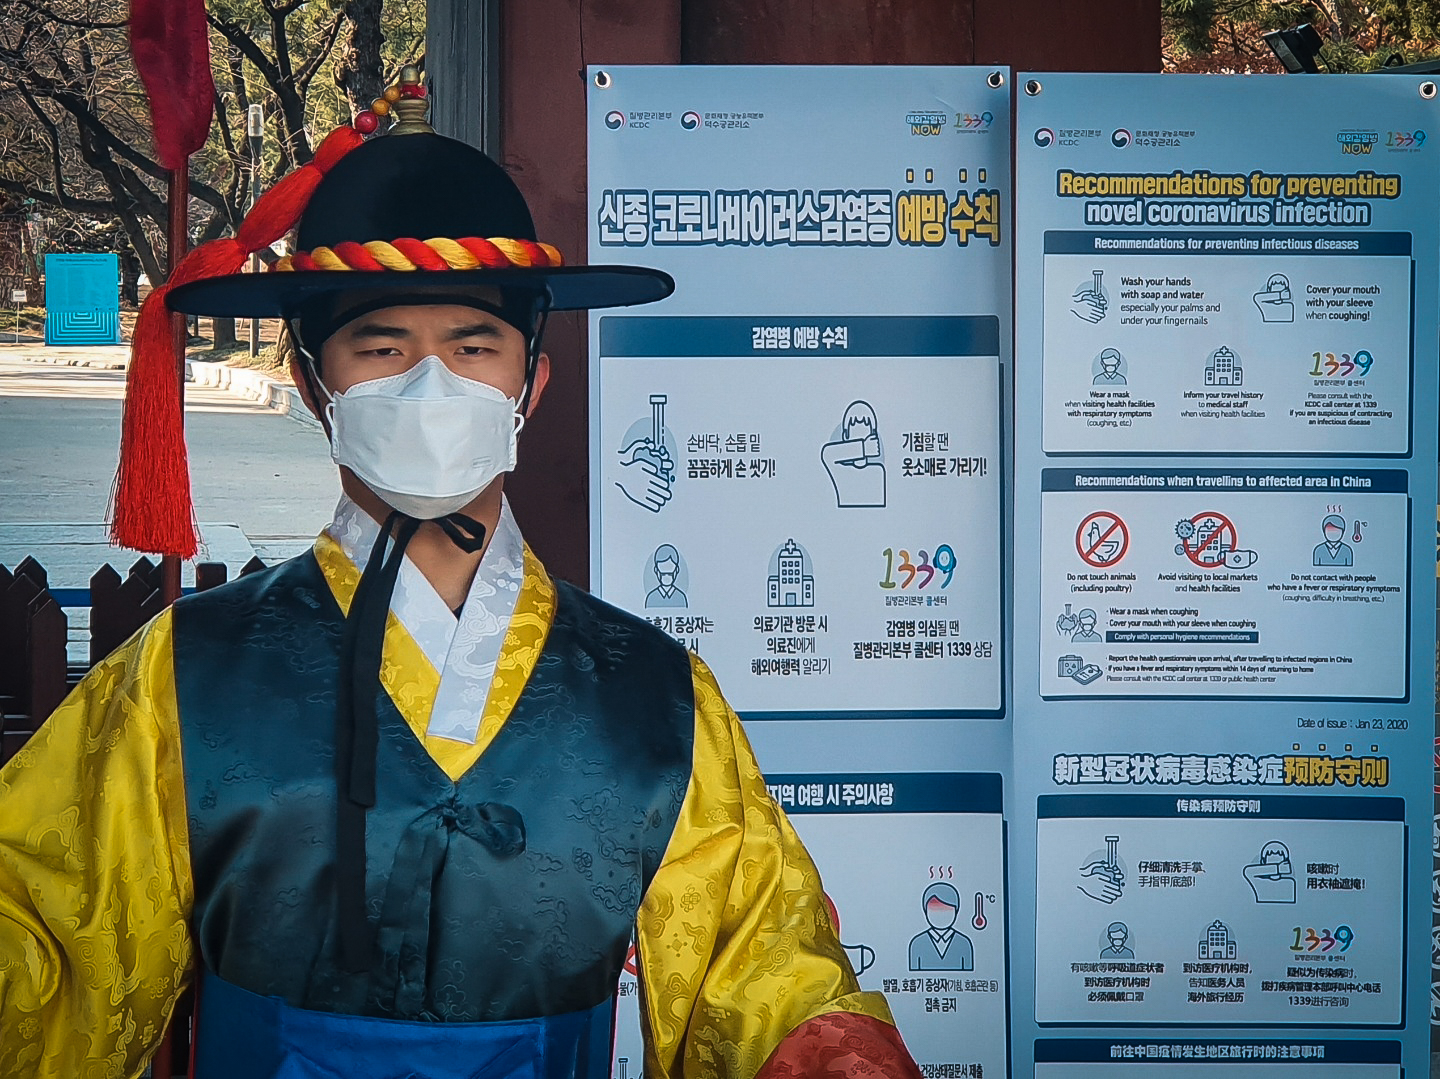 A guard in front of a traditional palace in Seoul wears a mask and stands in front of signs for recommendations for preventing the spread of the Coronavirus.